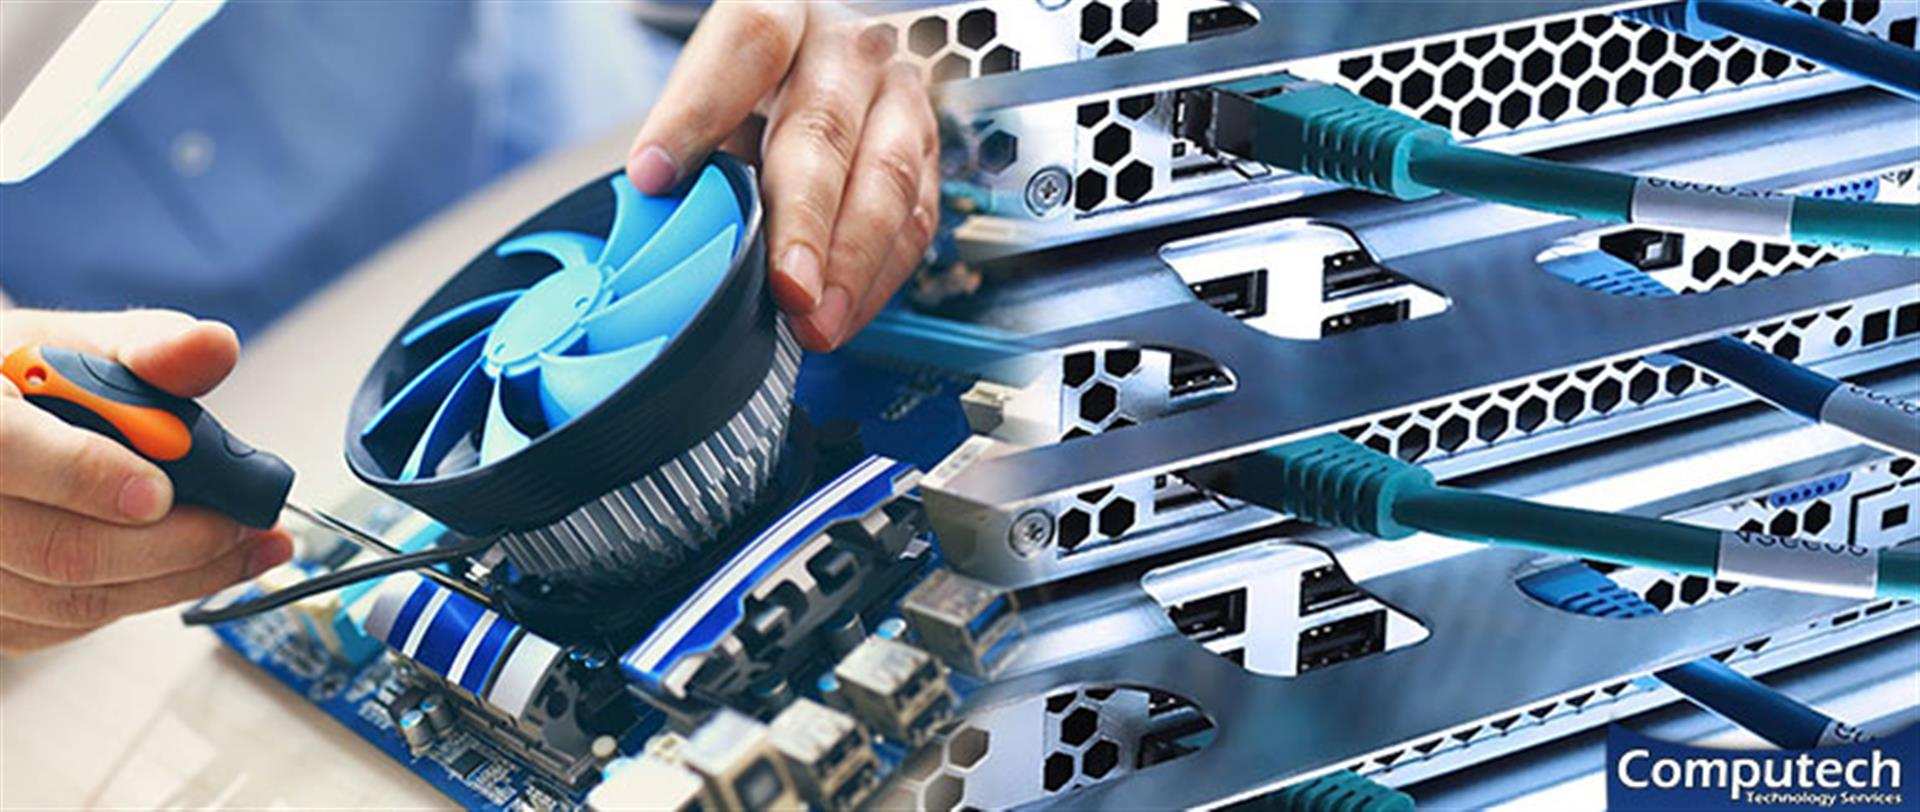 Goodyear Arizona Onsite Computer & Printer Repair, Networks, Telecom and Data Inside Wiring Services